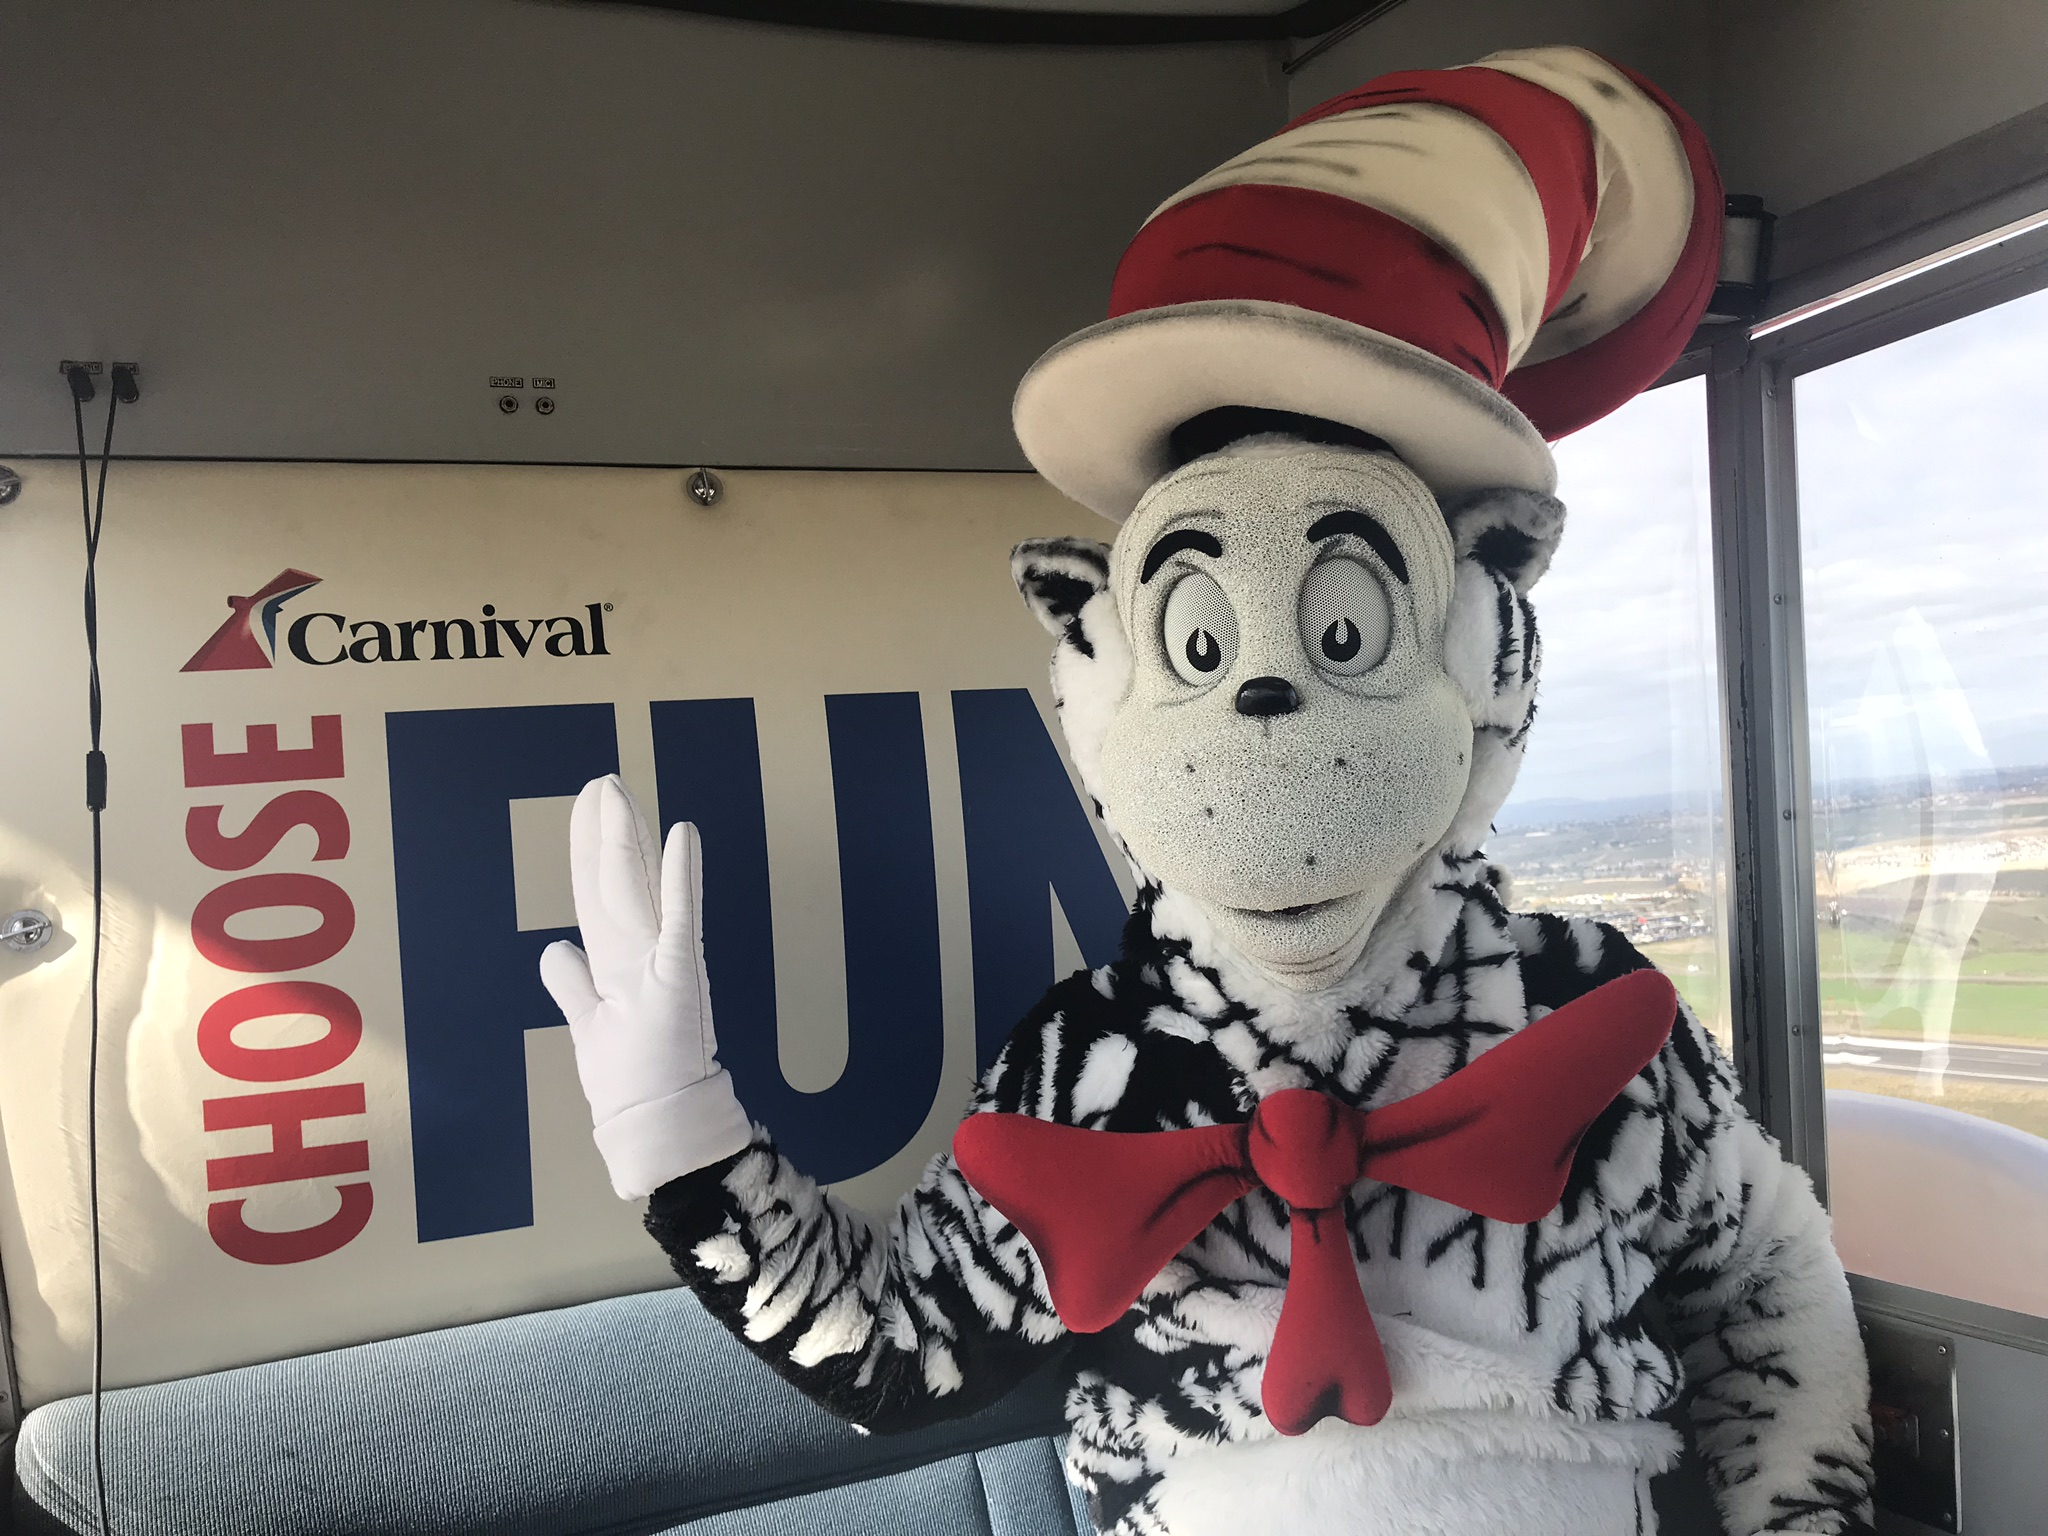 Oh, the Places He'll Go! The Cat in The Hat Takes to the Skies in Carnival's #ChooseFun AirShip